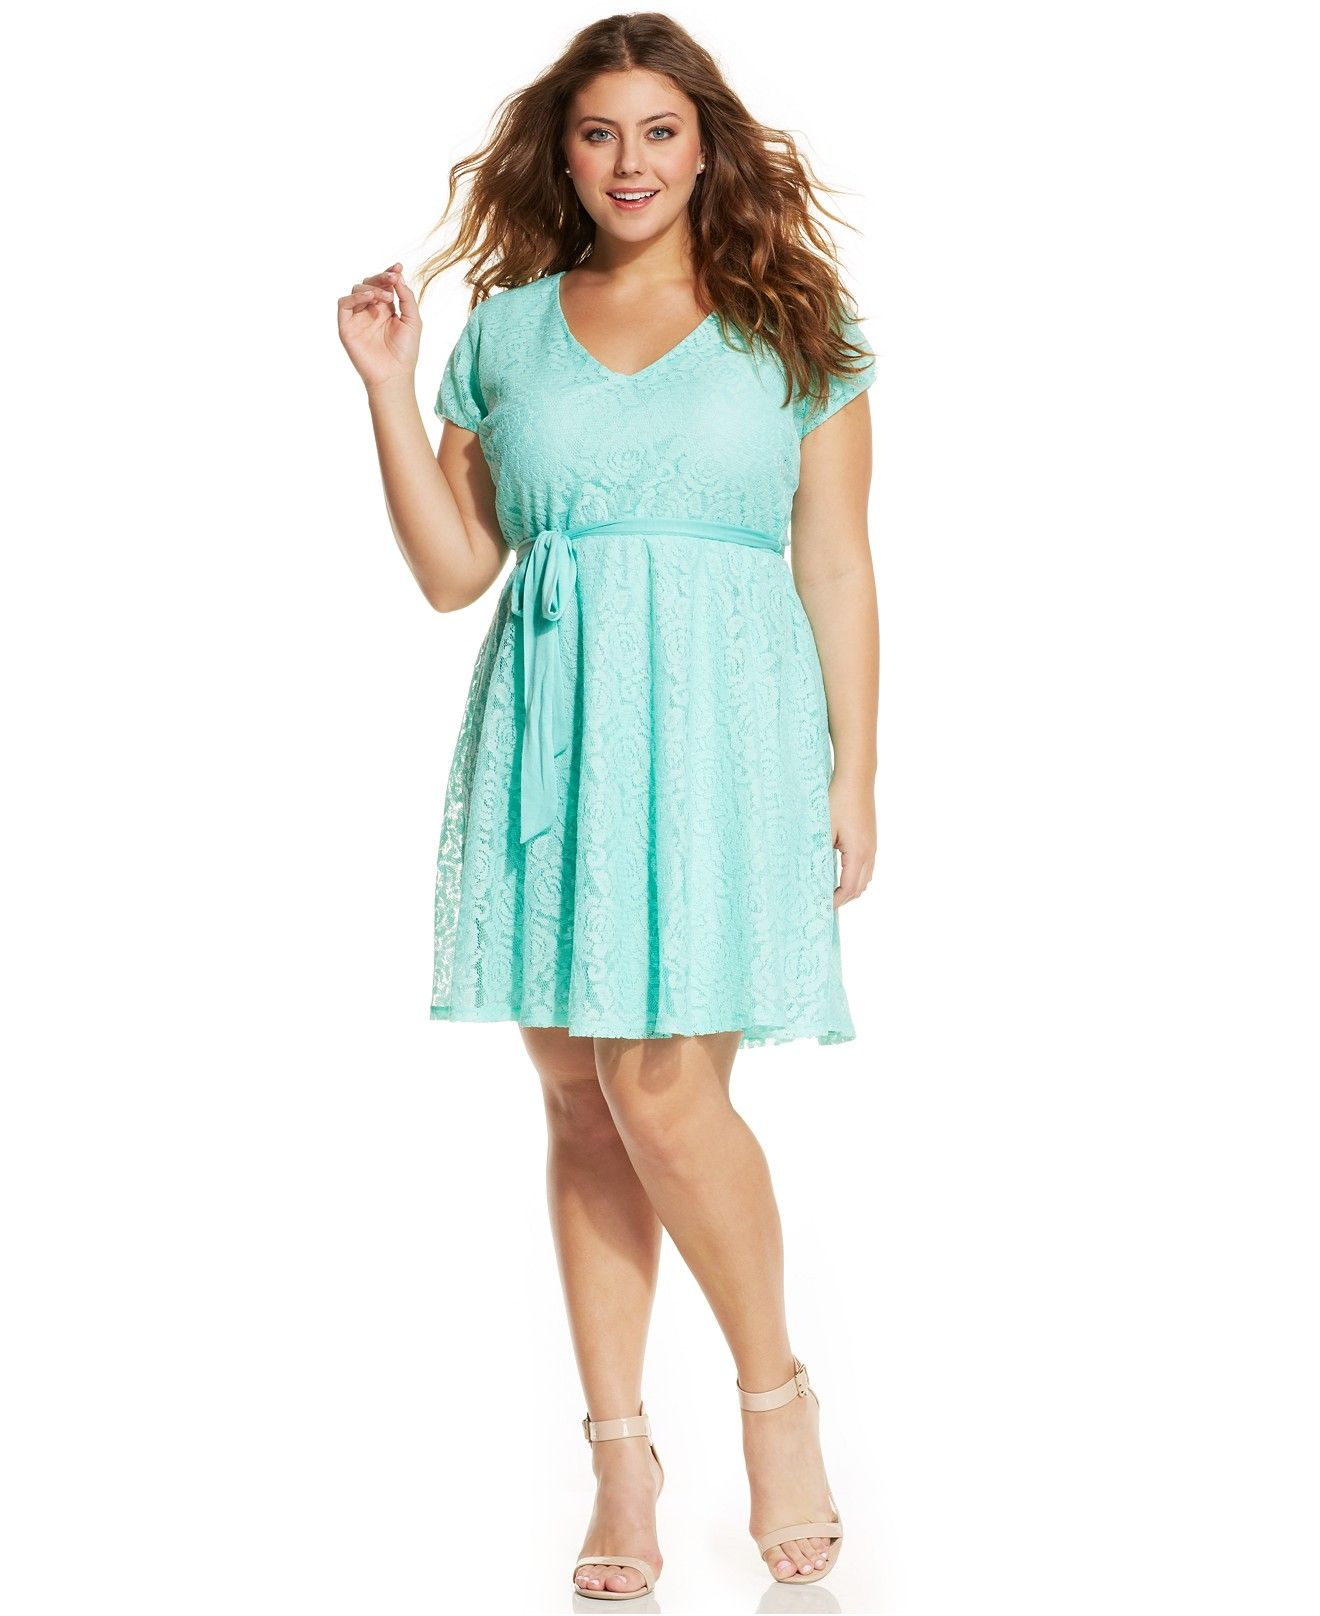 Love Squared Plus Size Short-Sleeve Lace A-Line Dress - Shop all ...